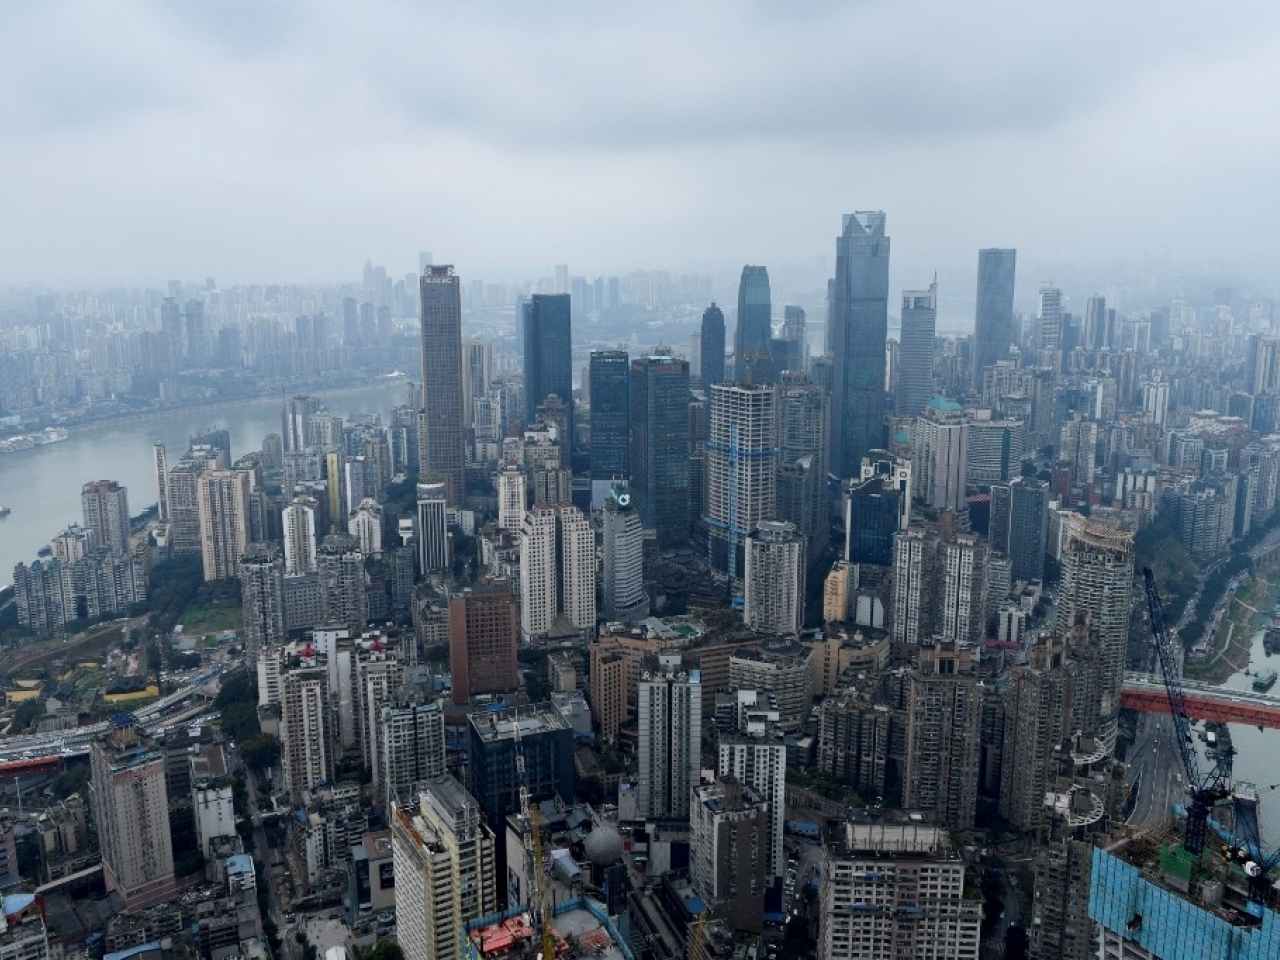 Fresh Covid-19 cases have been recorded in two more regions in the mainland, including Chongqing, a municipality that is home to more than 30 million people. File photo: AFP